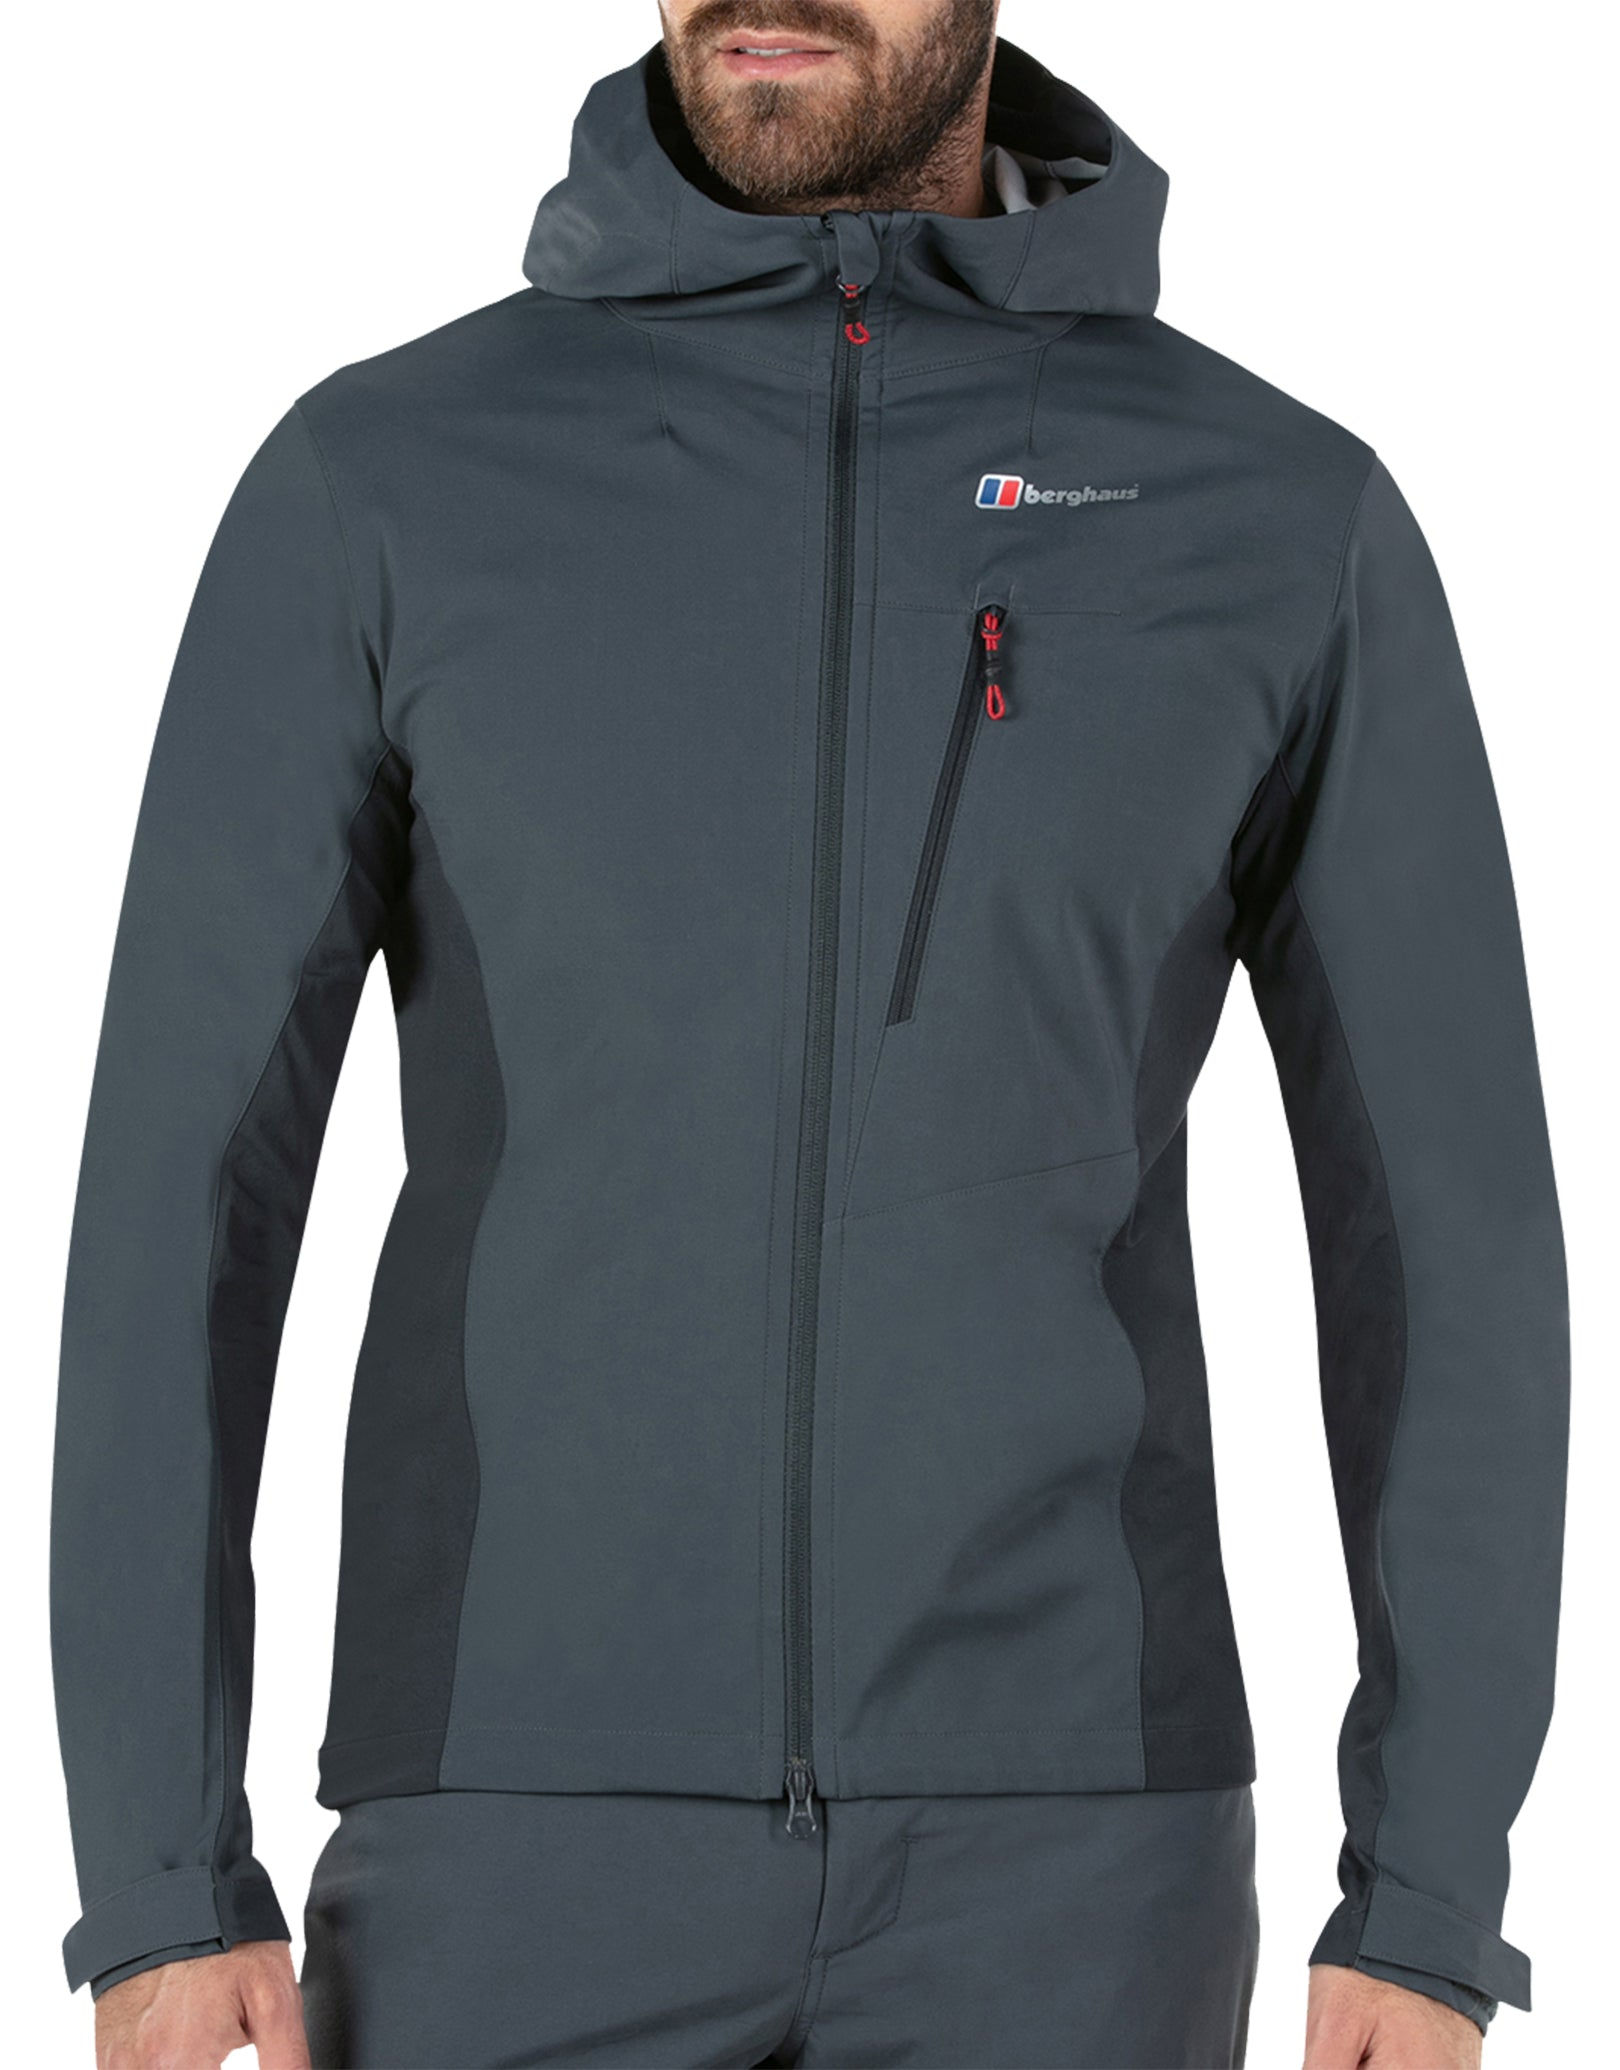 70acfe8d852 Berghaus Mens Taboche Softshell Jacket - Carbon | Simply Hike UK